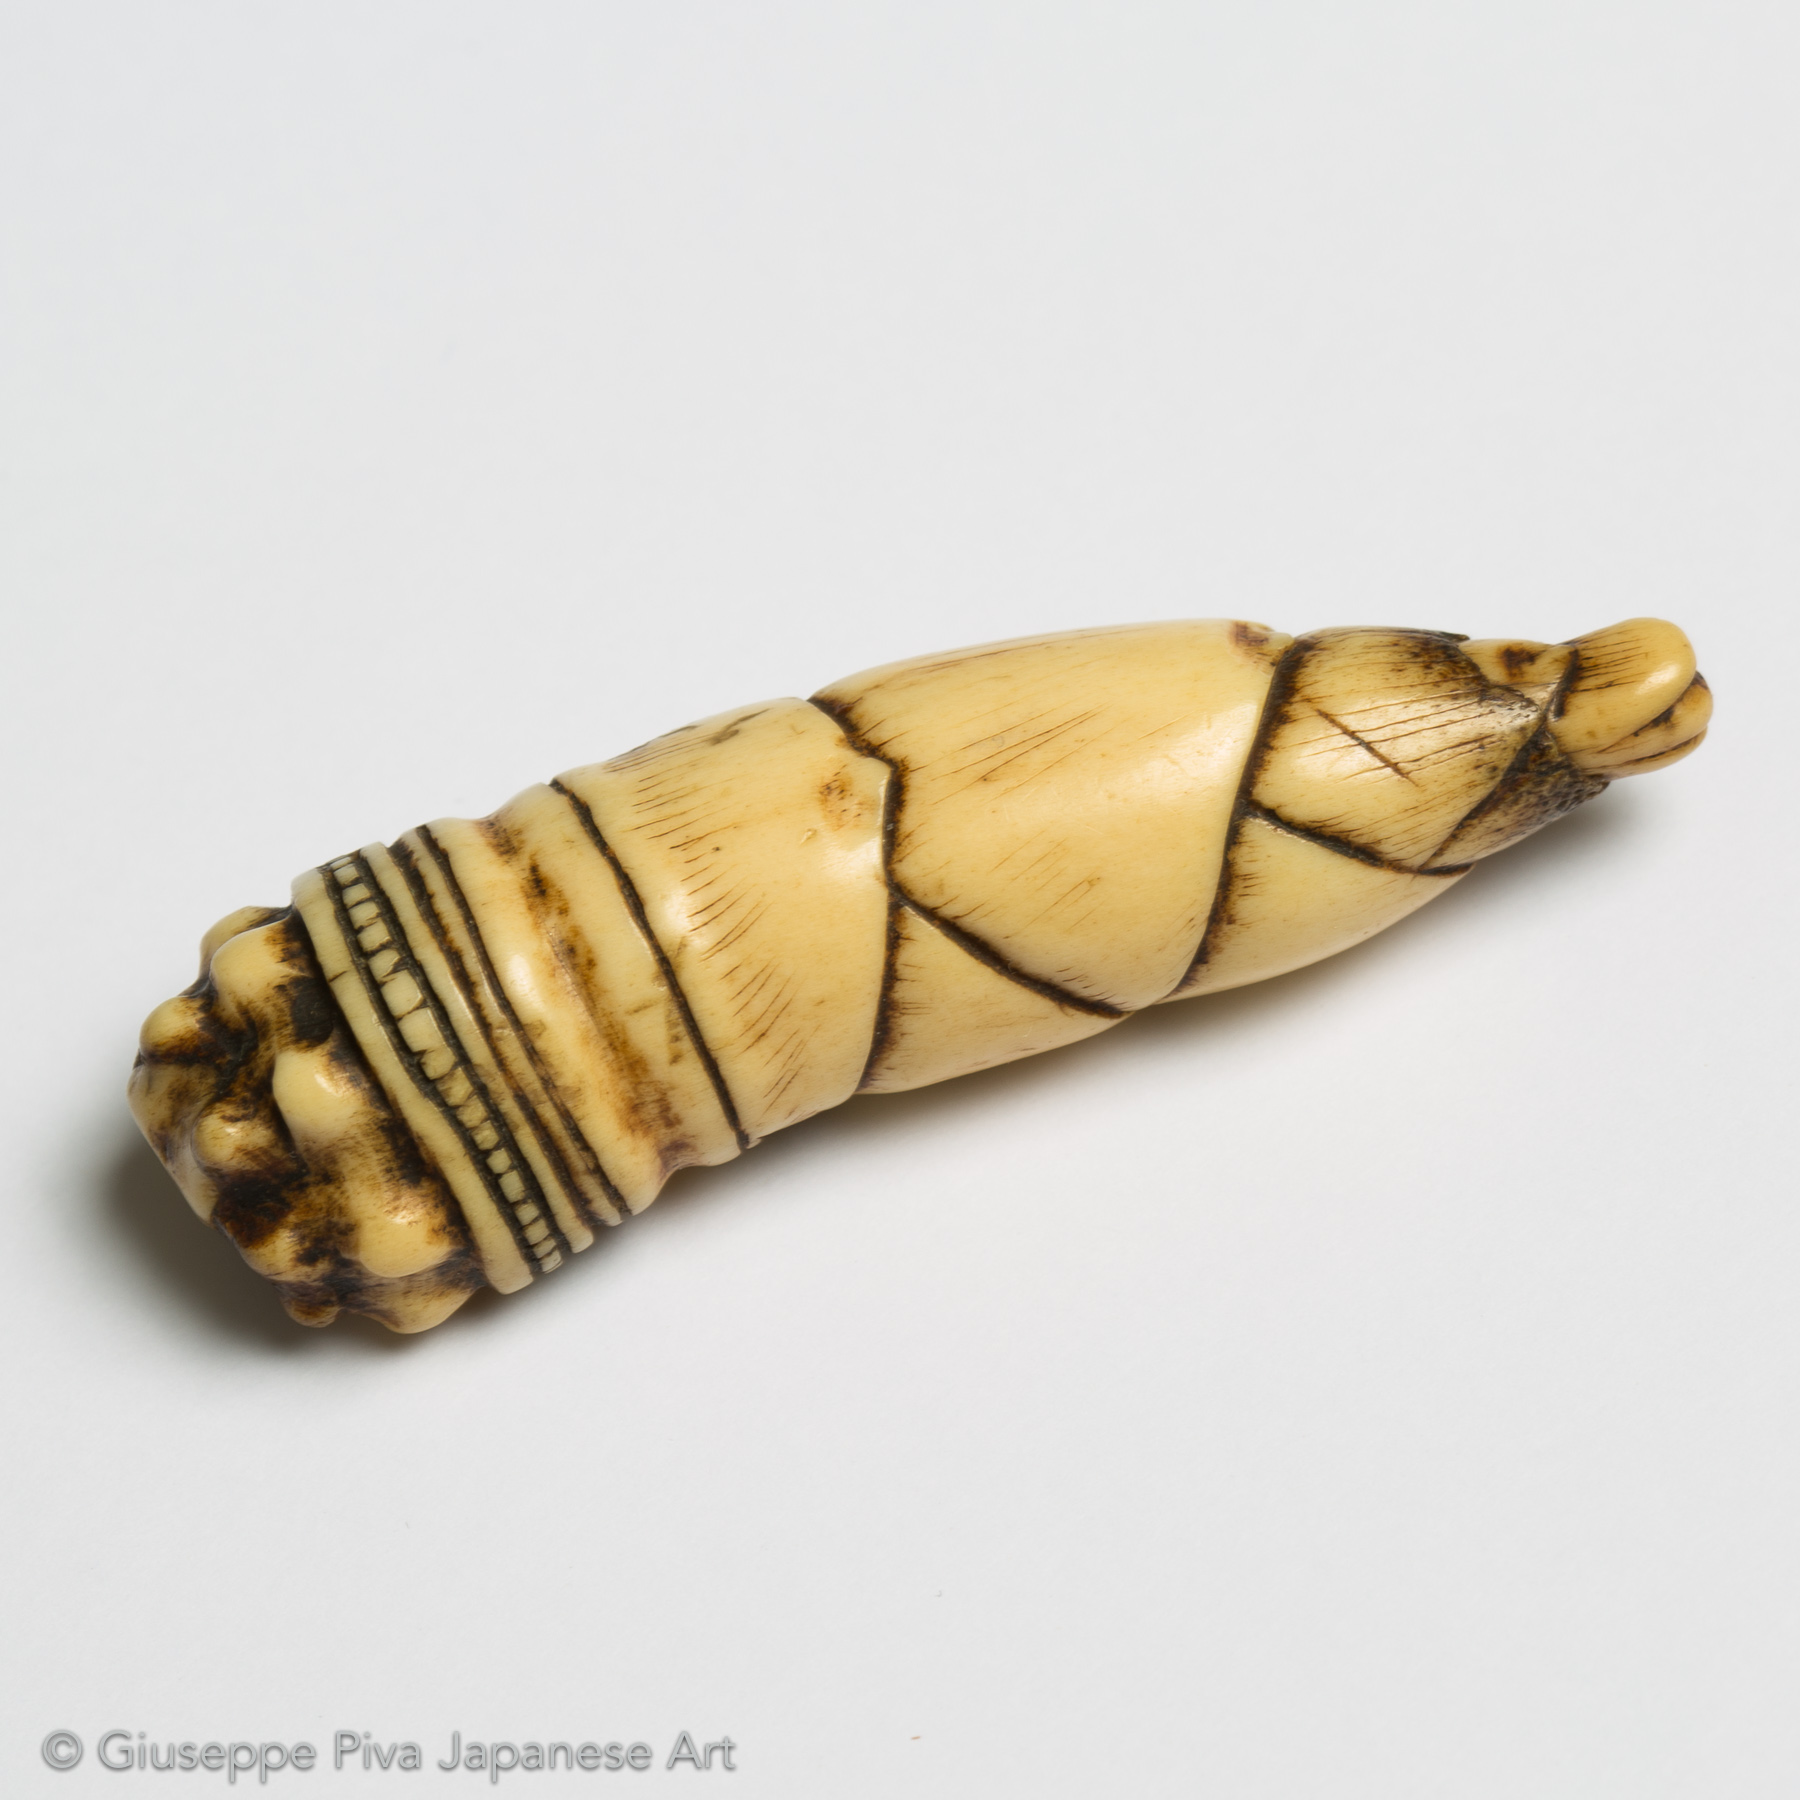 Stag antler netsuke of a bamboo shoot